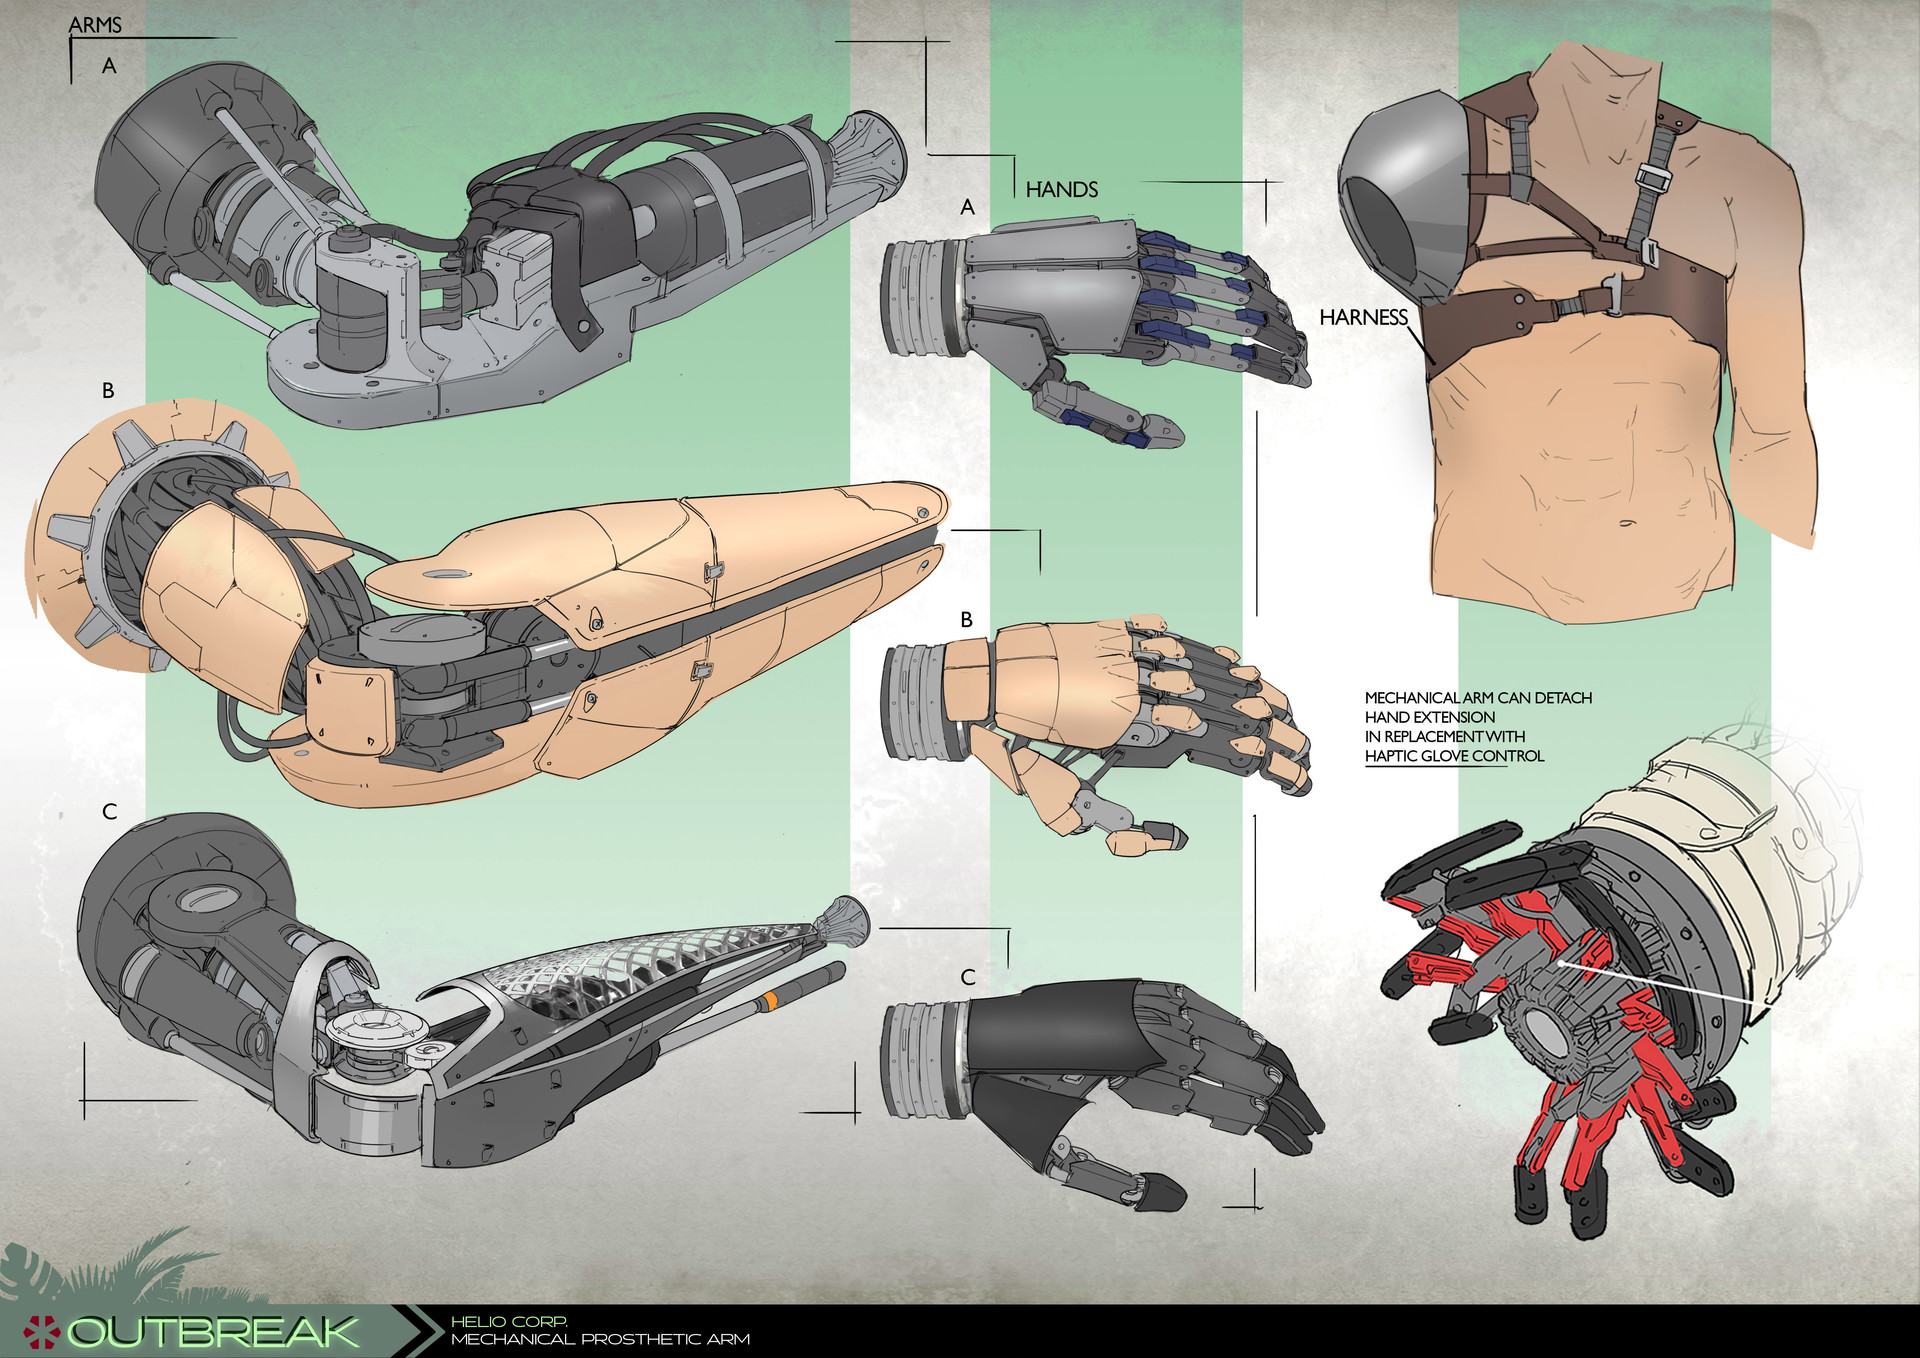 Project Outbreak - Mechanical Prosthetic Limb